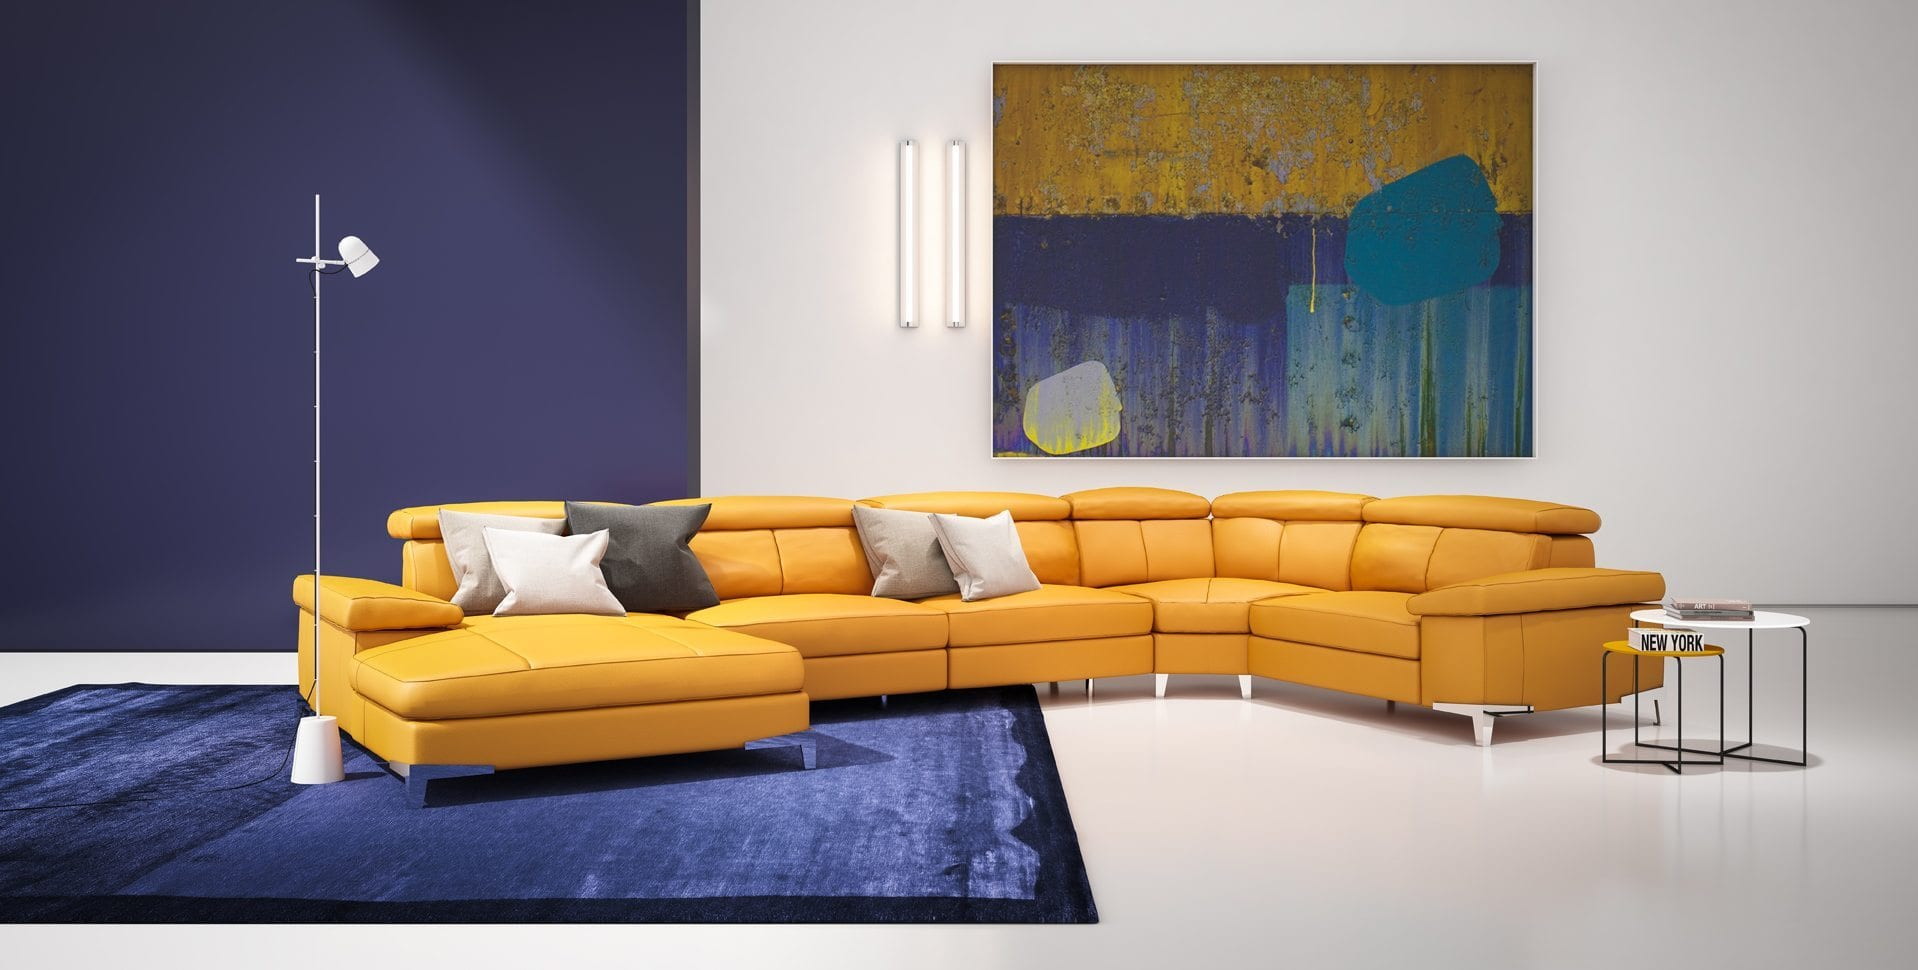 Maayan-Golan_Architectural-Visualization_product-visualization_living-room-sofa_rossetto-furniture_05